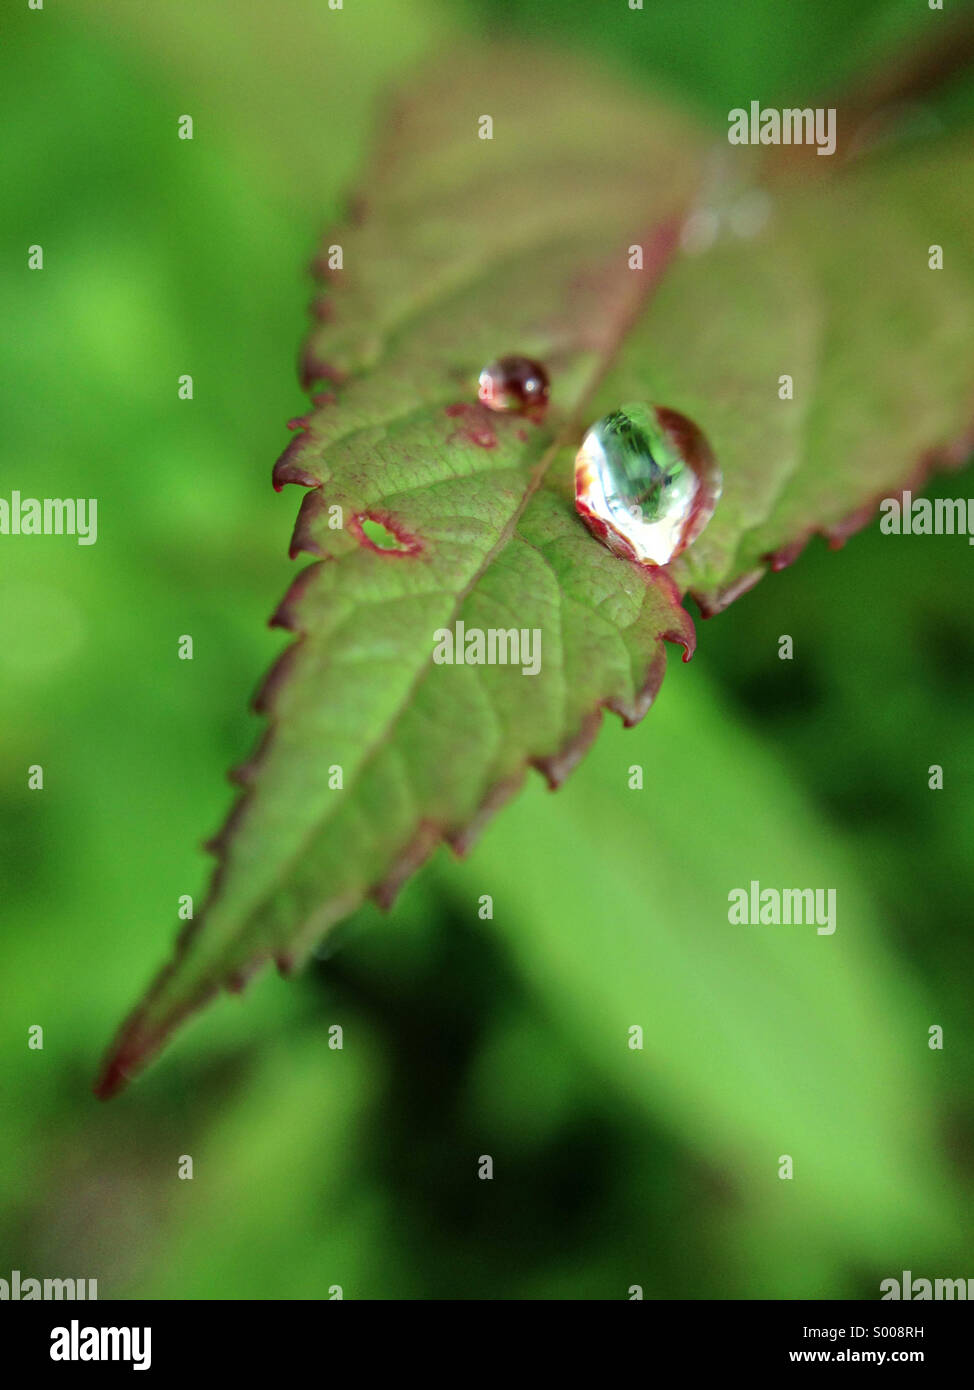 Raindrop on leaf. - Stock Image